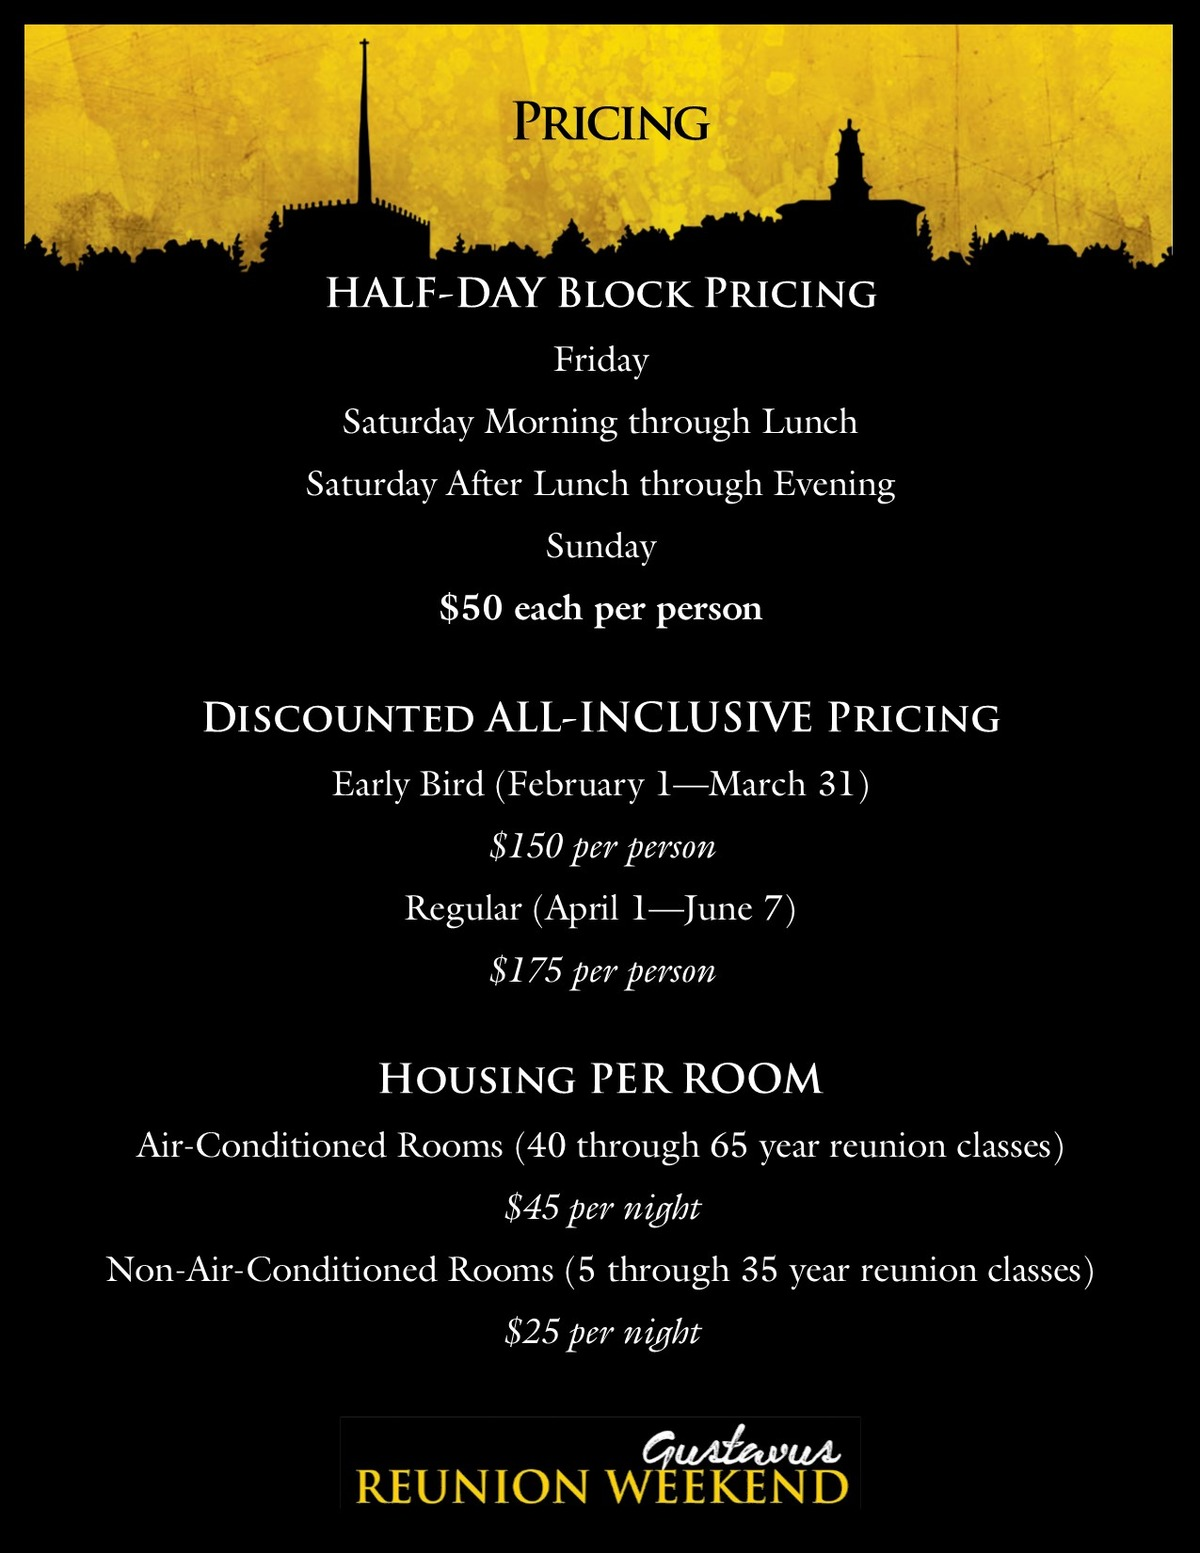 Reunion Weekend 2019 Pricing Overview